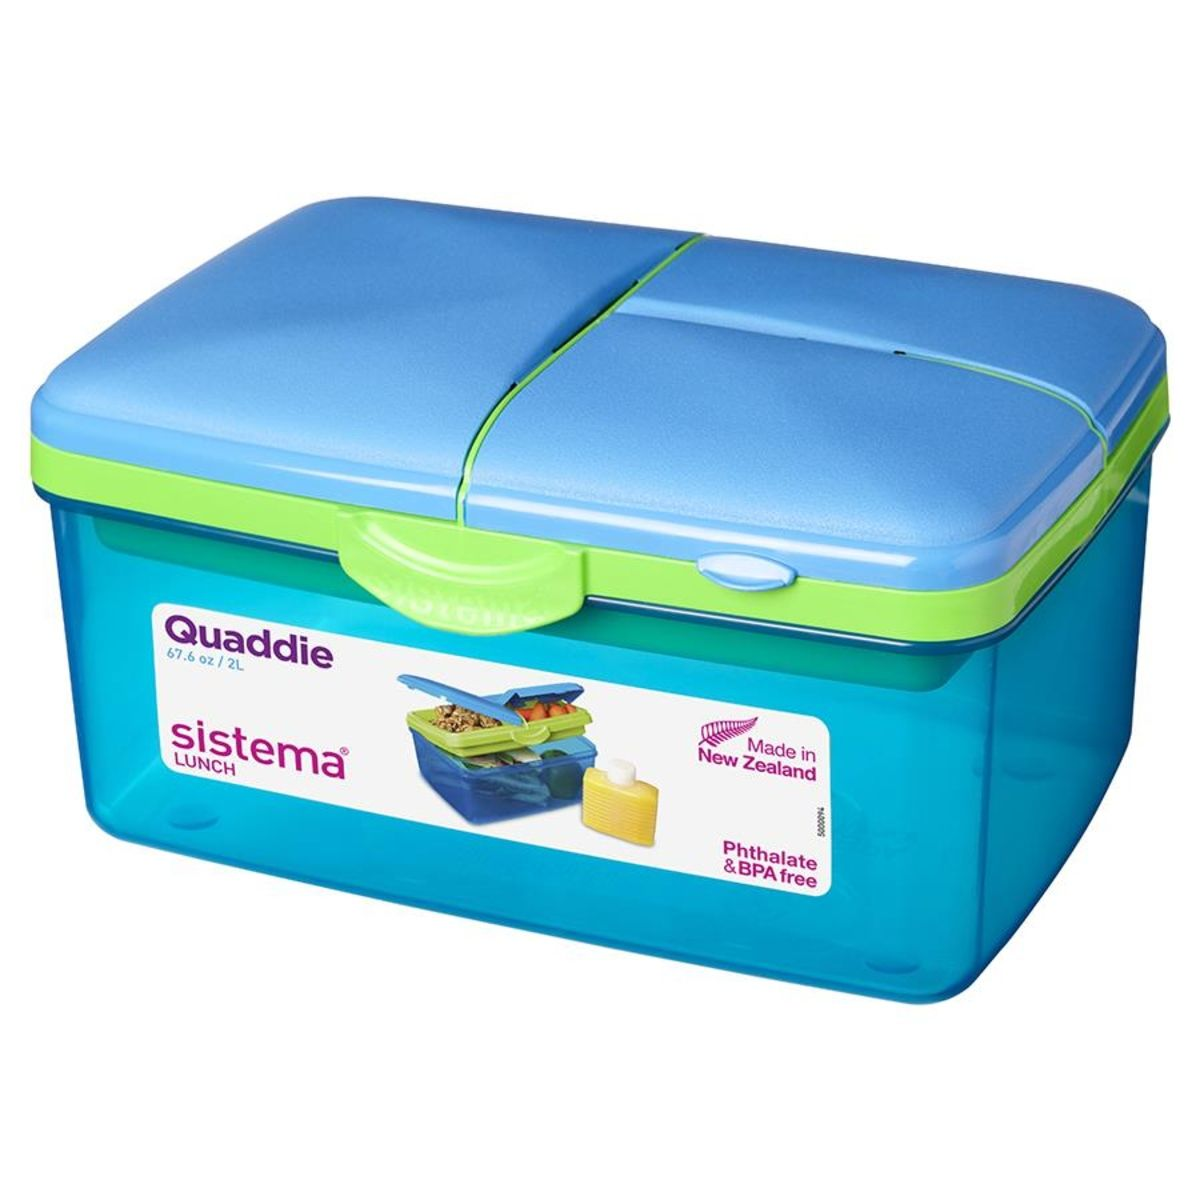 Container Haus Ebay Quaddie Lunch Box Large Sistema 970 Food For Work Pinterest